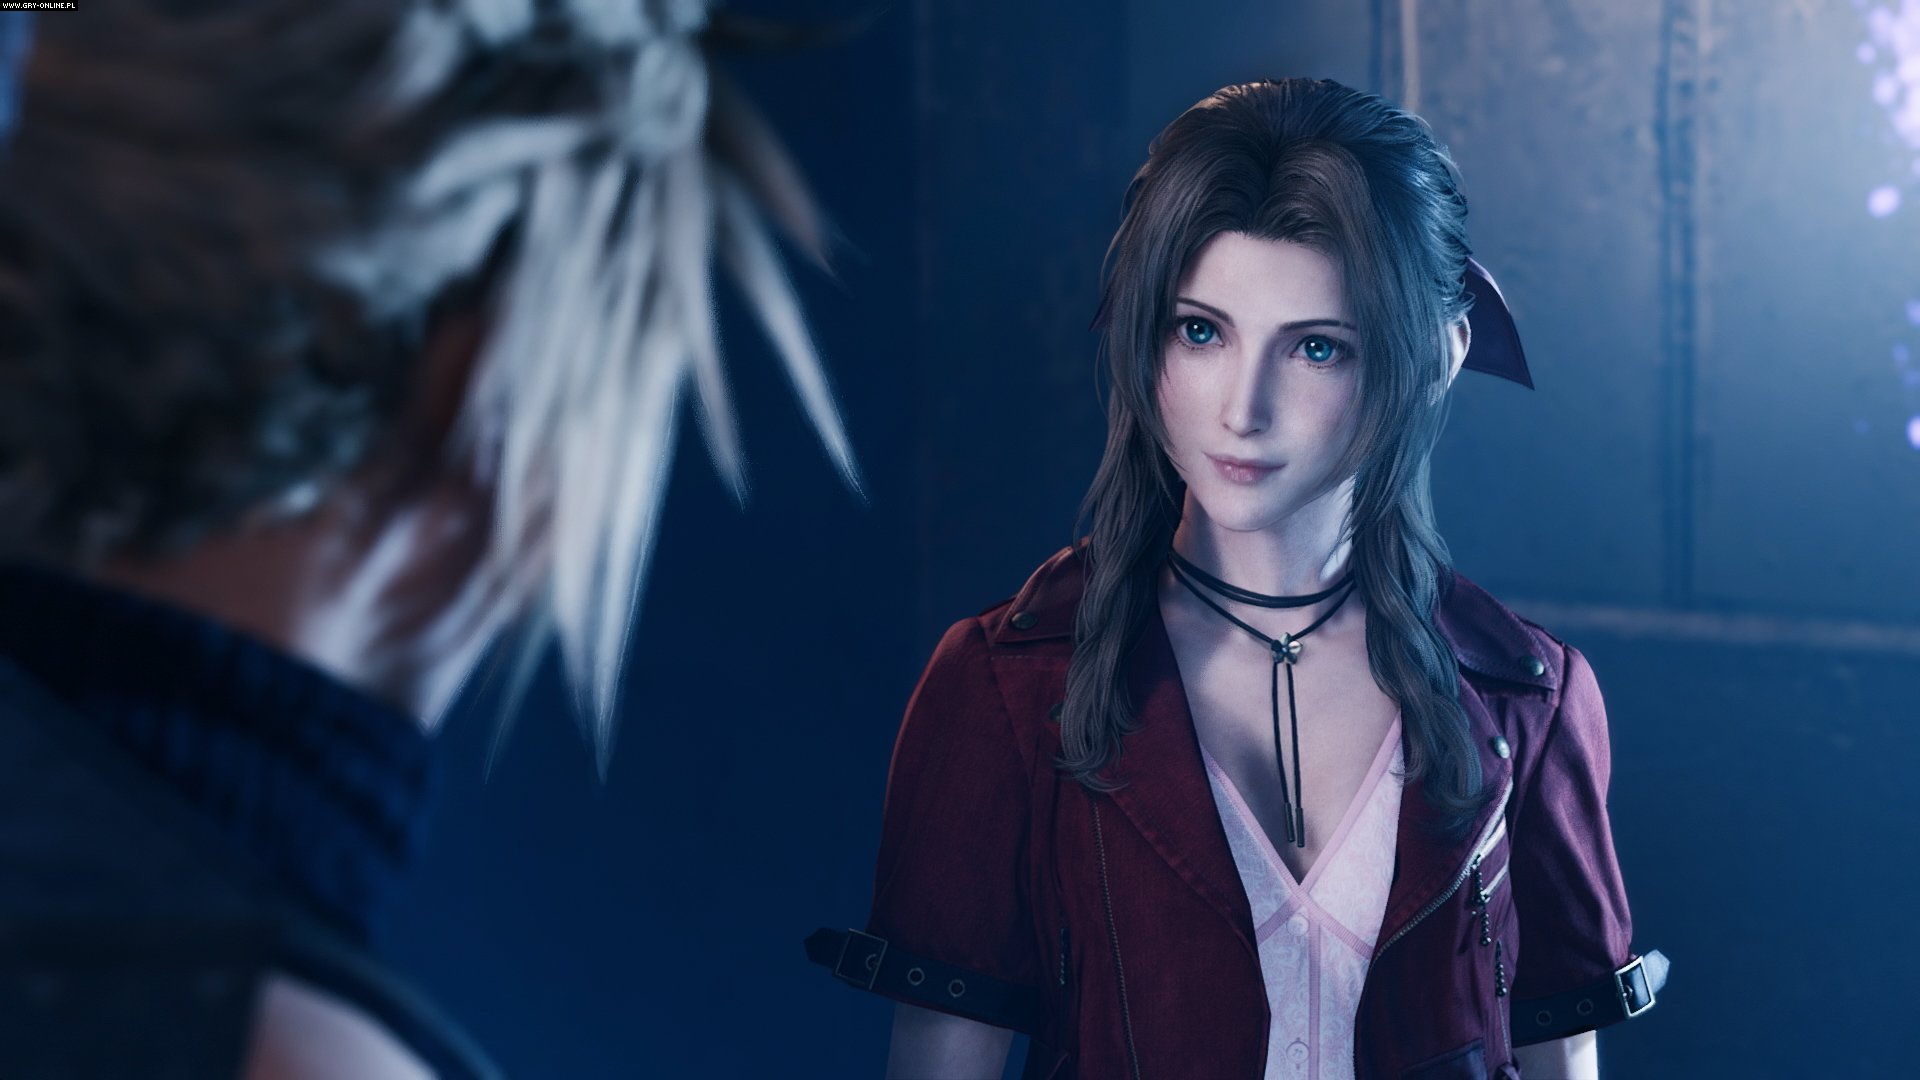 Final Fantasy VII Remake PS4 Games Image 25/71, Square-Enix / Eidos